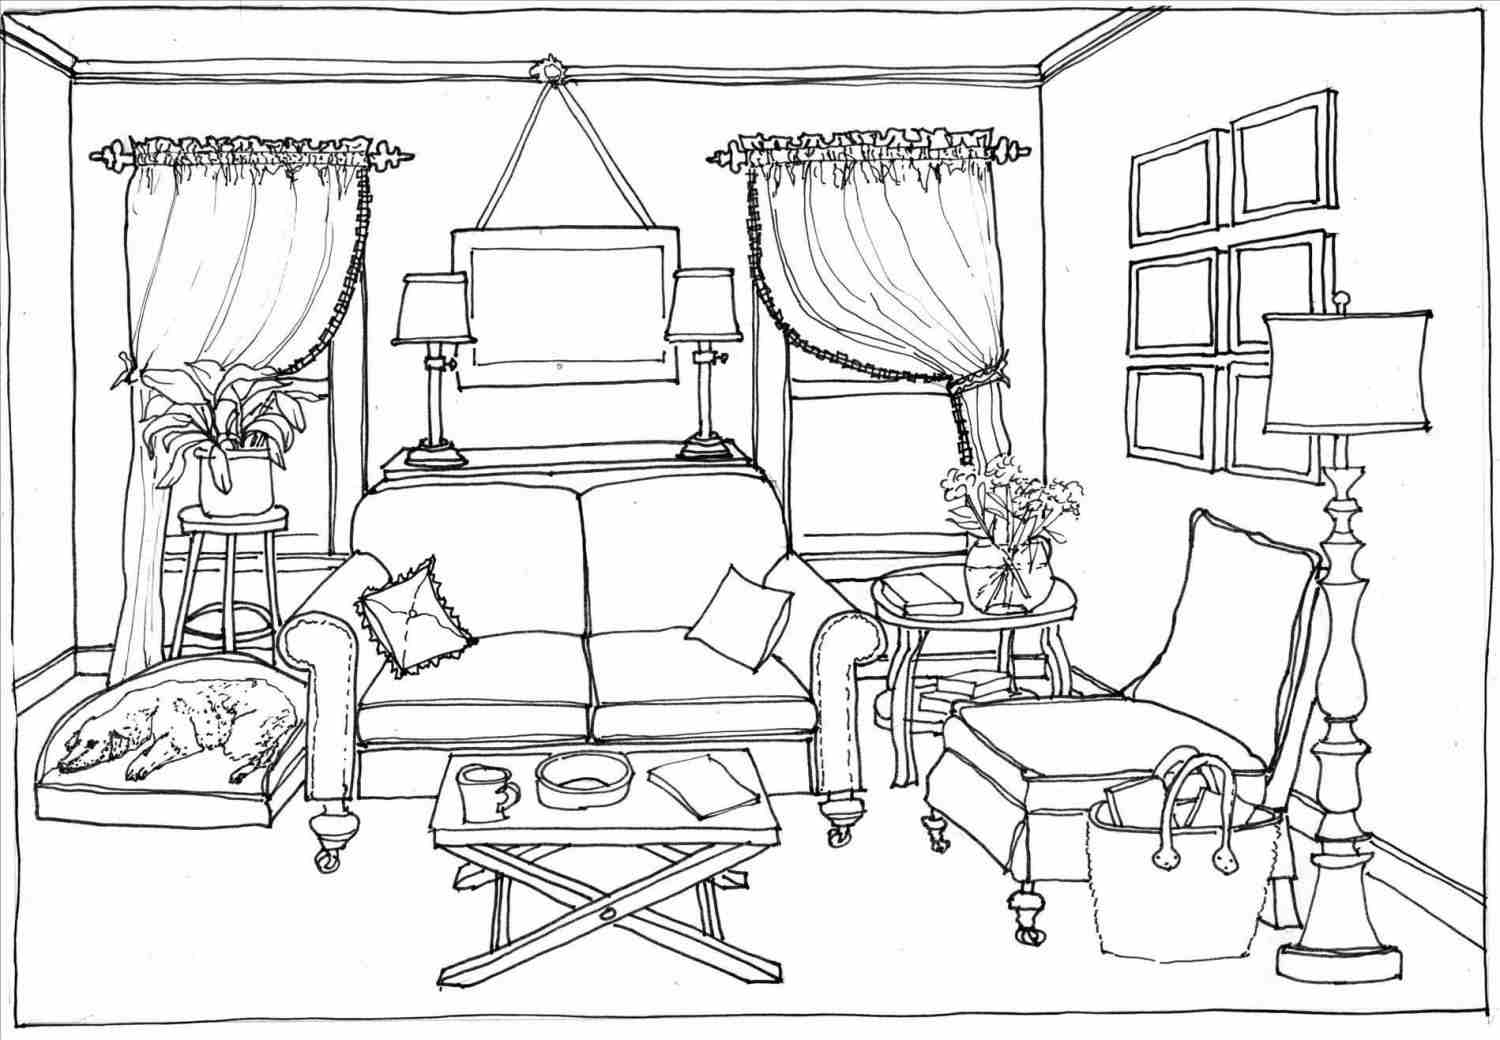 Things in the black. Bedroom clipart outline